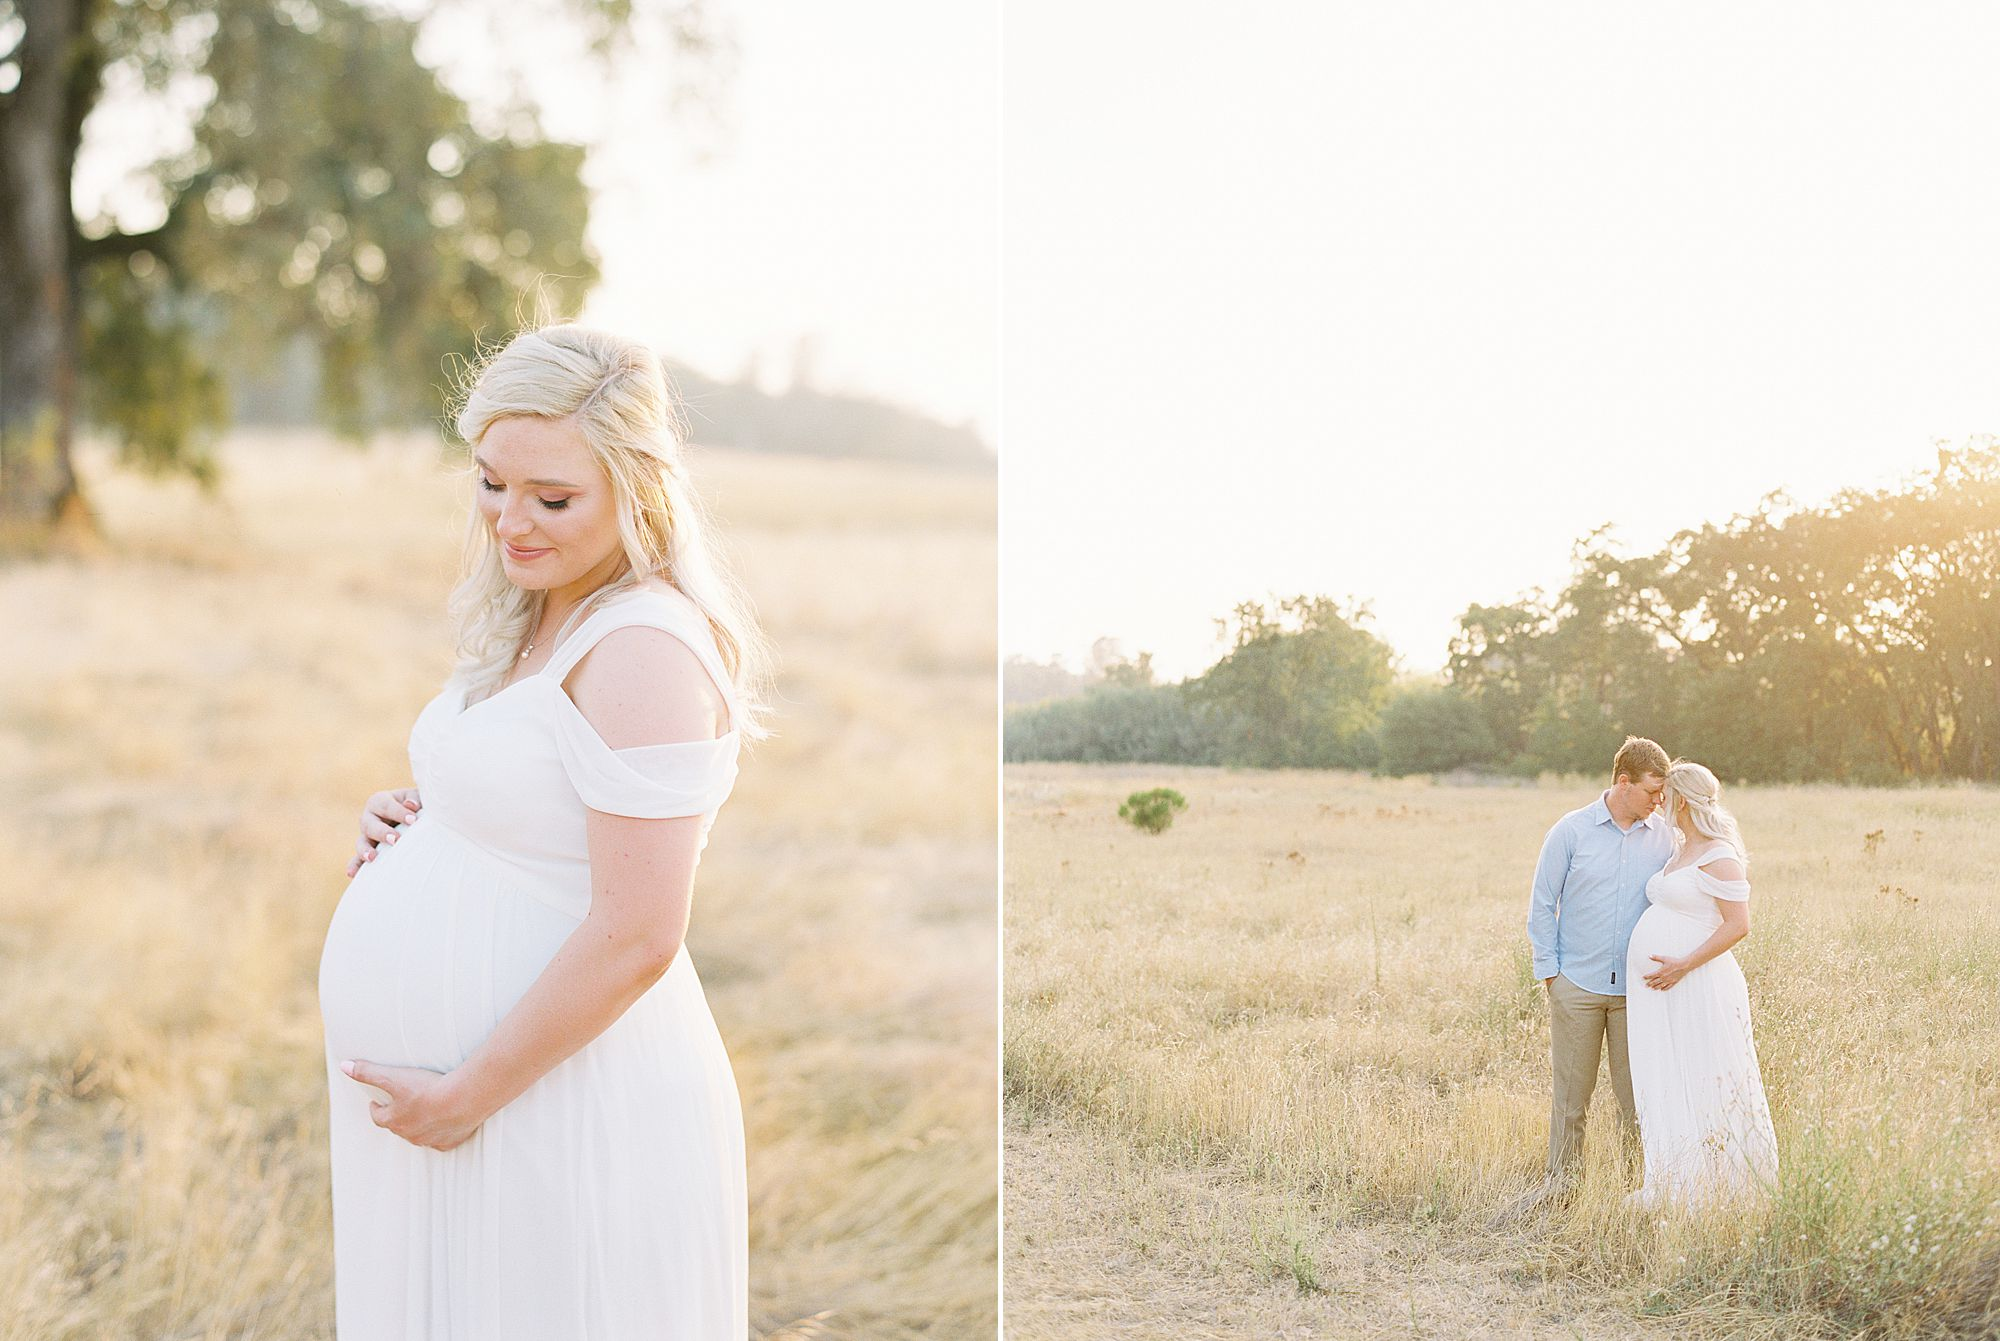 Golden Sacramento Maternity - Hannah and Connor - Ashley Baumgartner - Sacramento Maternity Photographer_0002.jpg